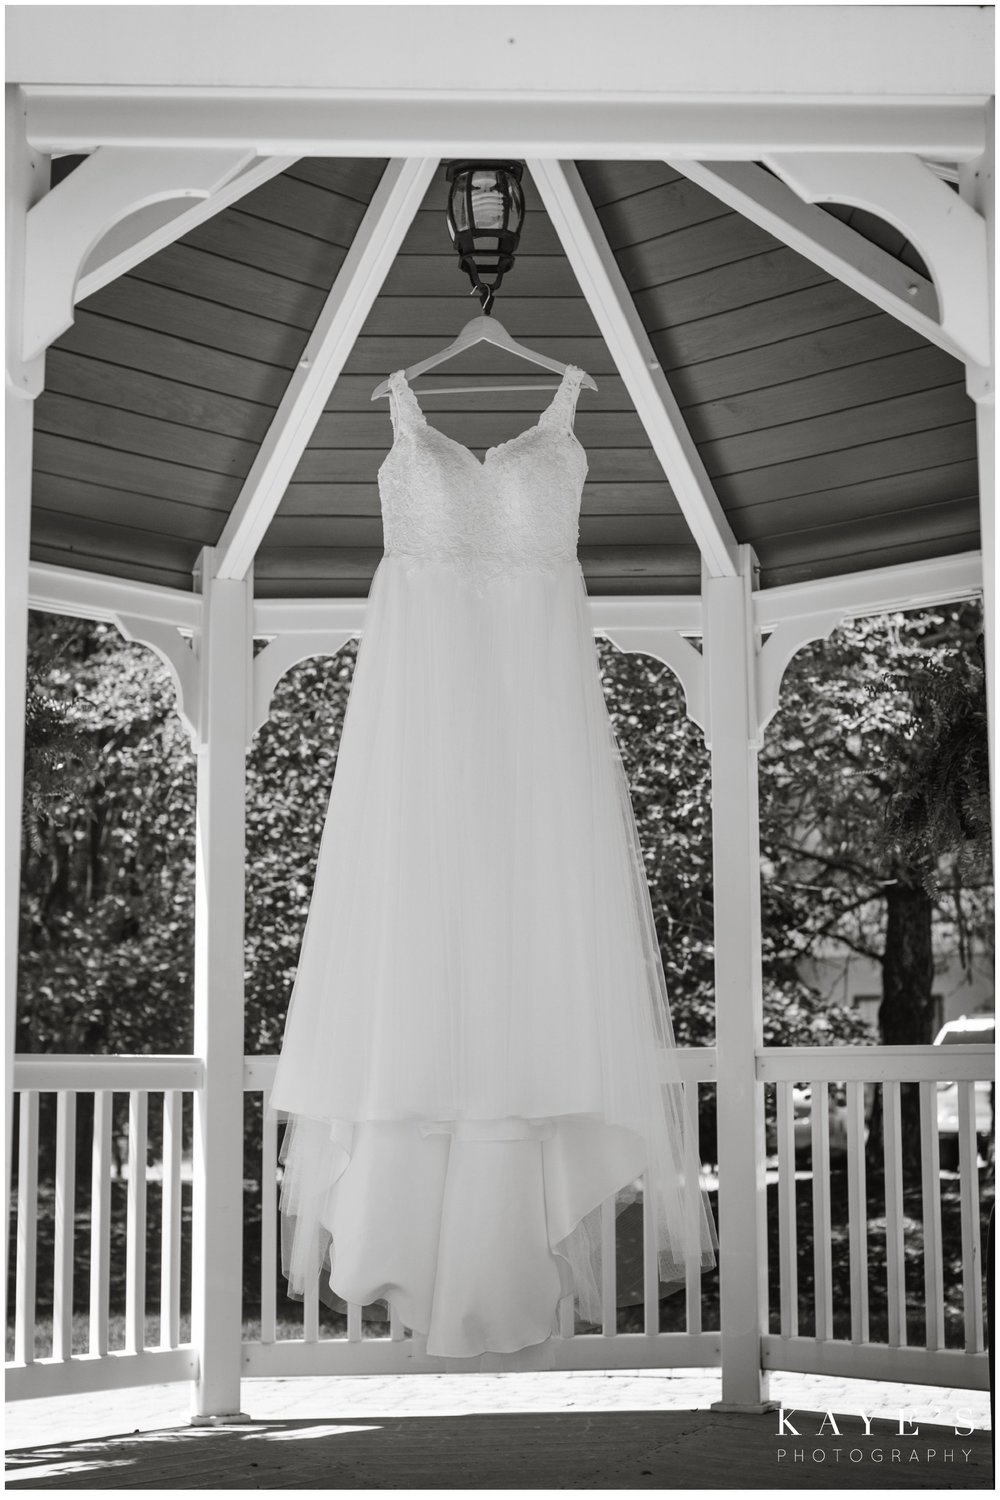 Kayes Photography- howell-michigan-wedding-photographer_0721.jpg